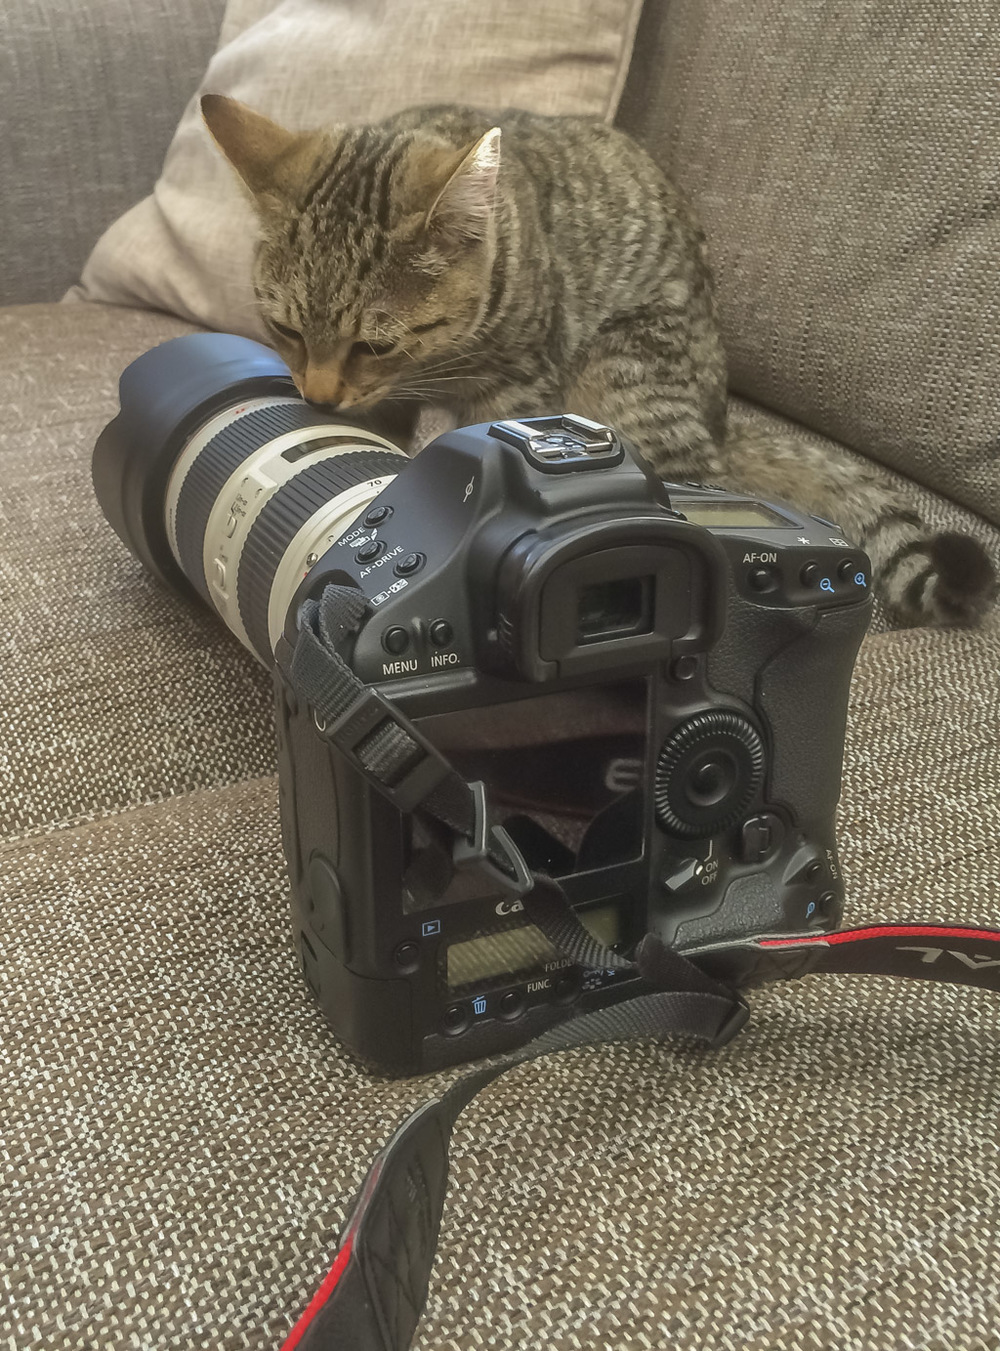 During a recent after shoot consultation, I noticed the equipment was being thoroughly inspected to ensure it was up to scratch!